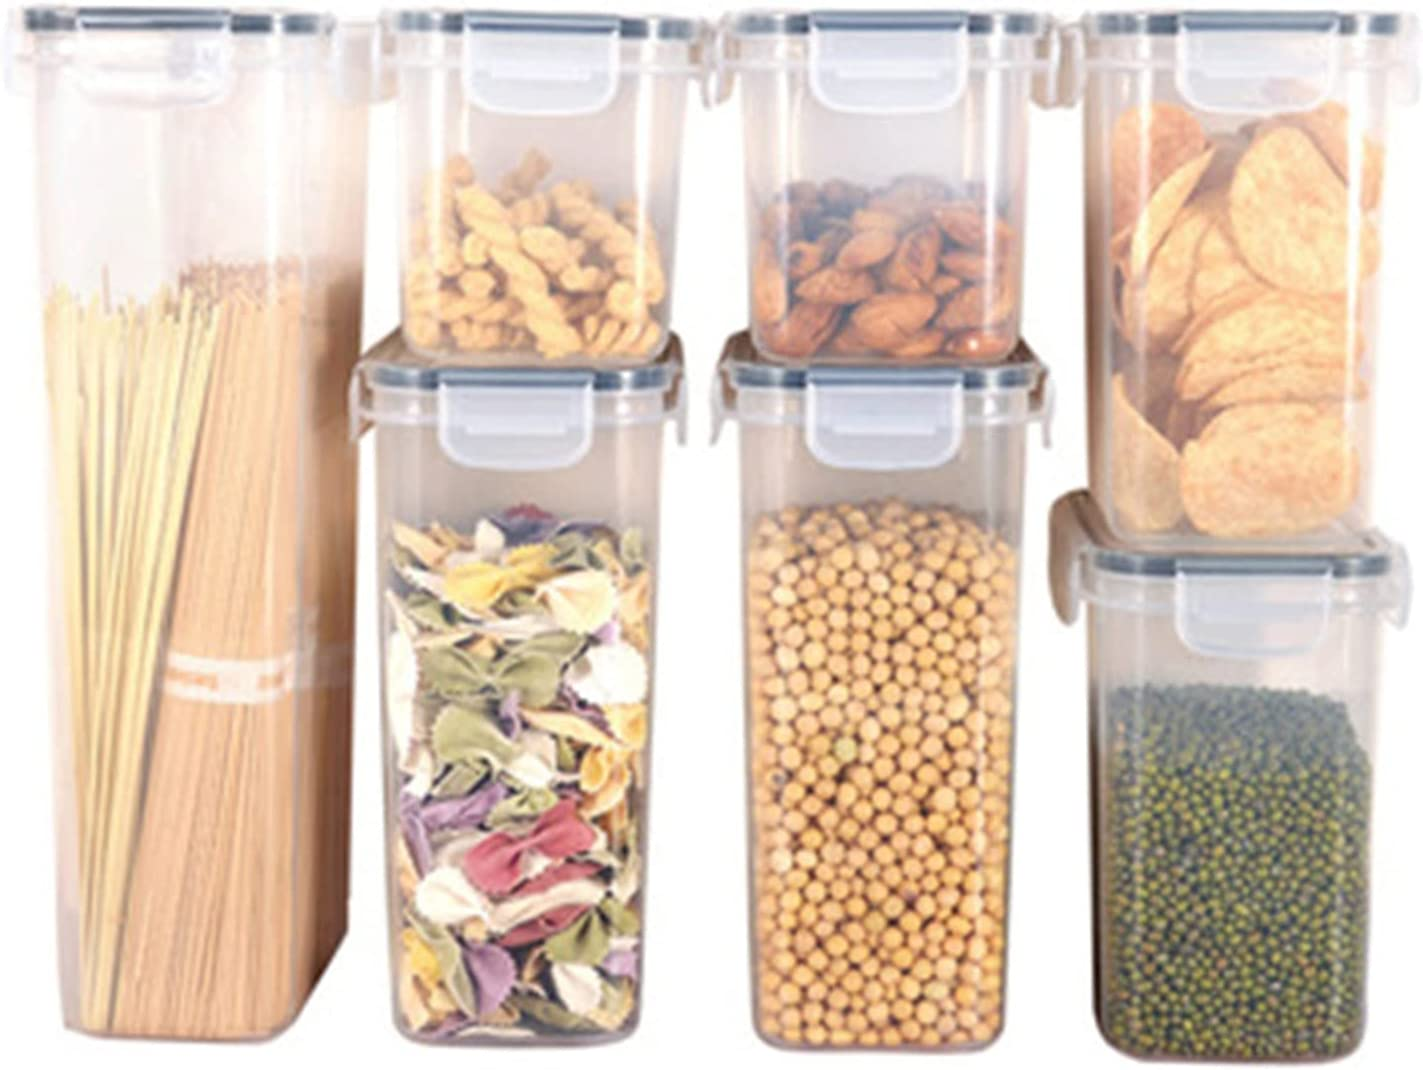 Airtight Food Storage Containers Set Canisters Max 64% OFF Kitchen for Max 65% OFF Flour